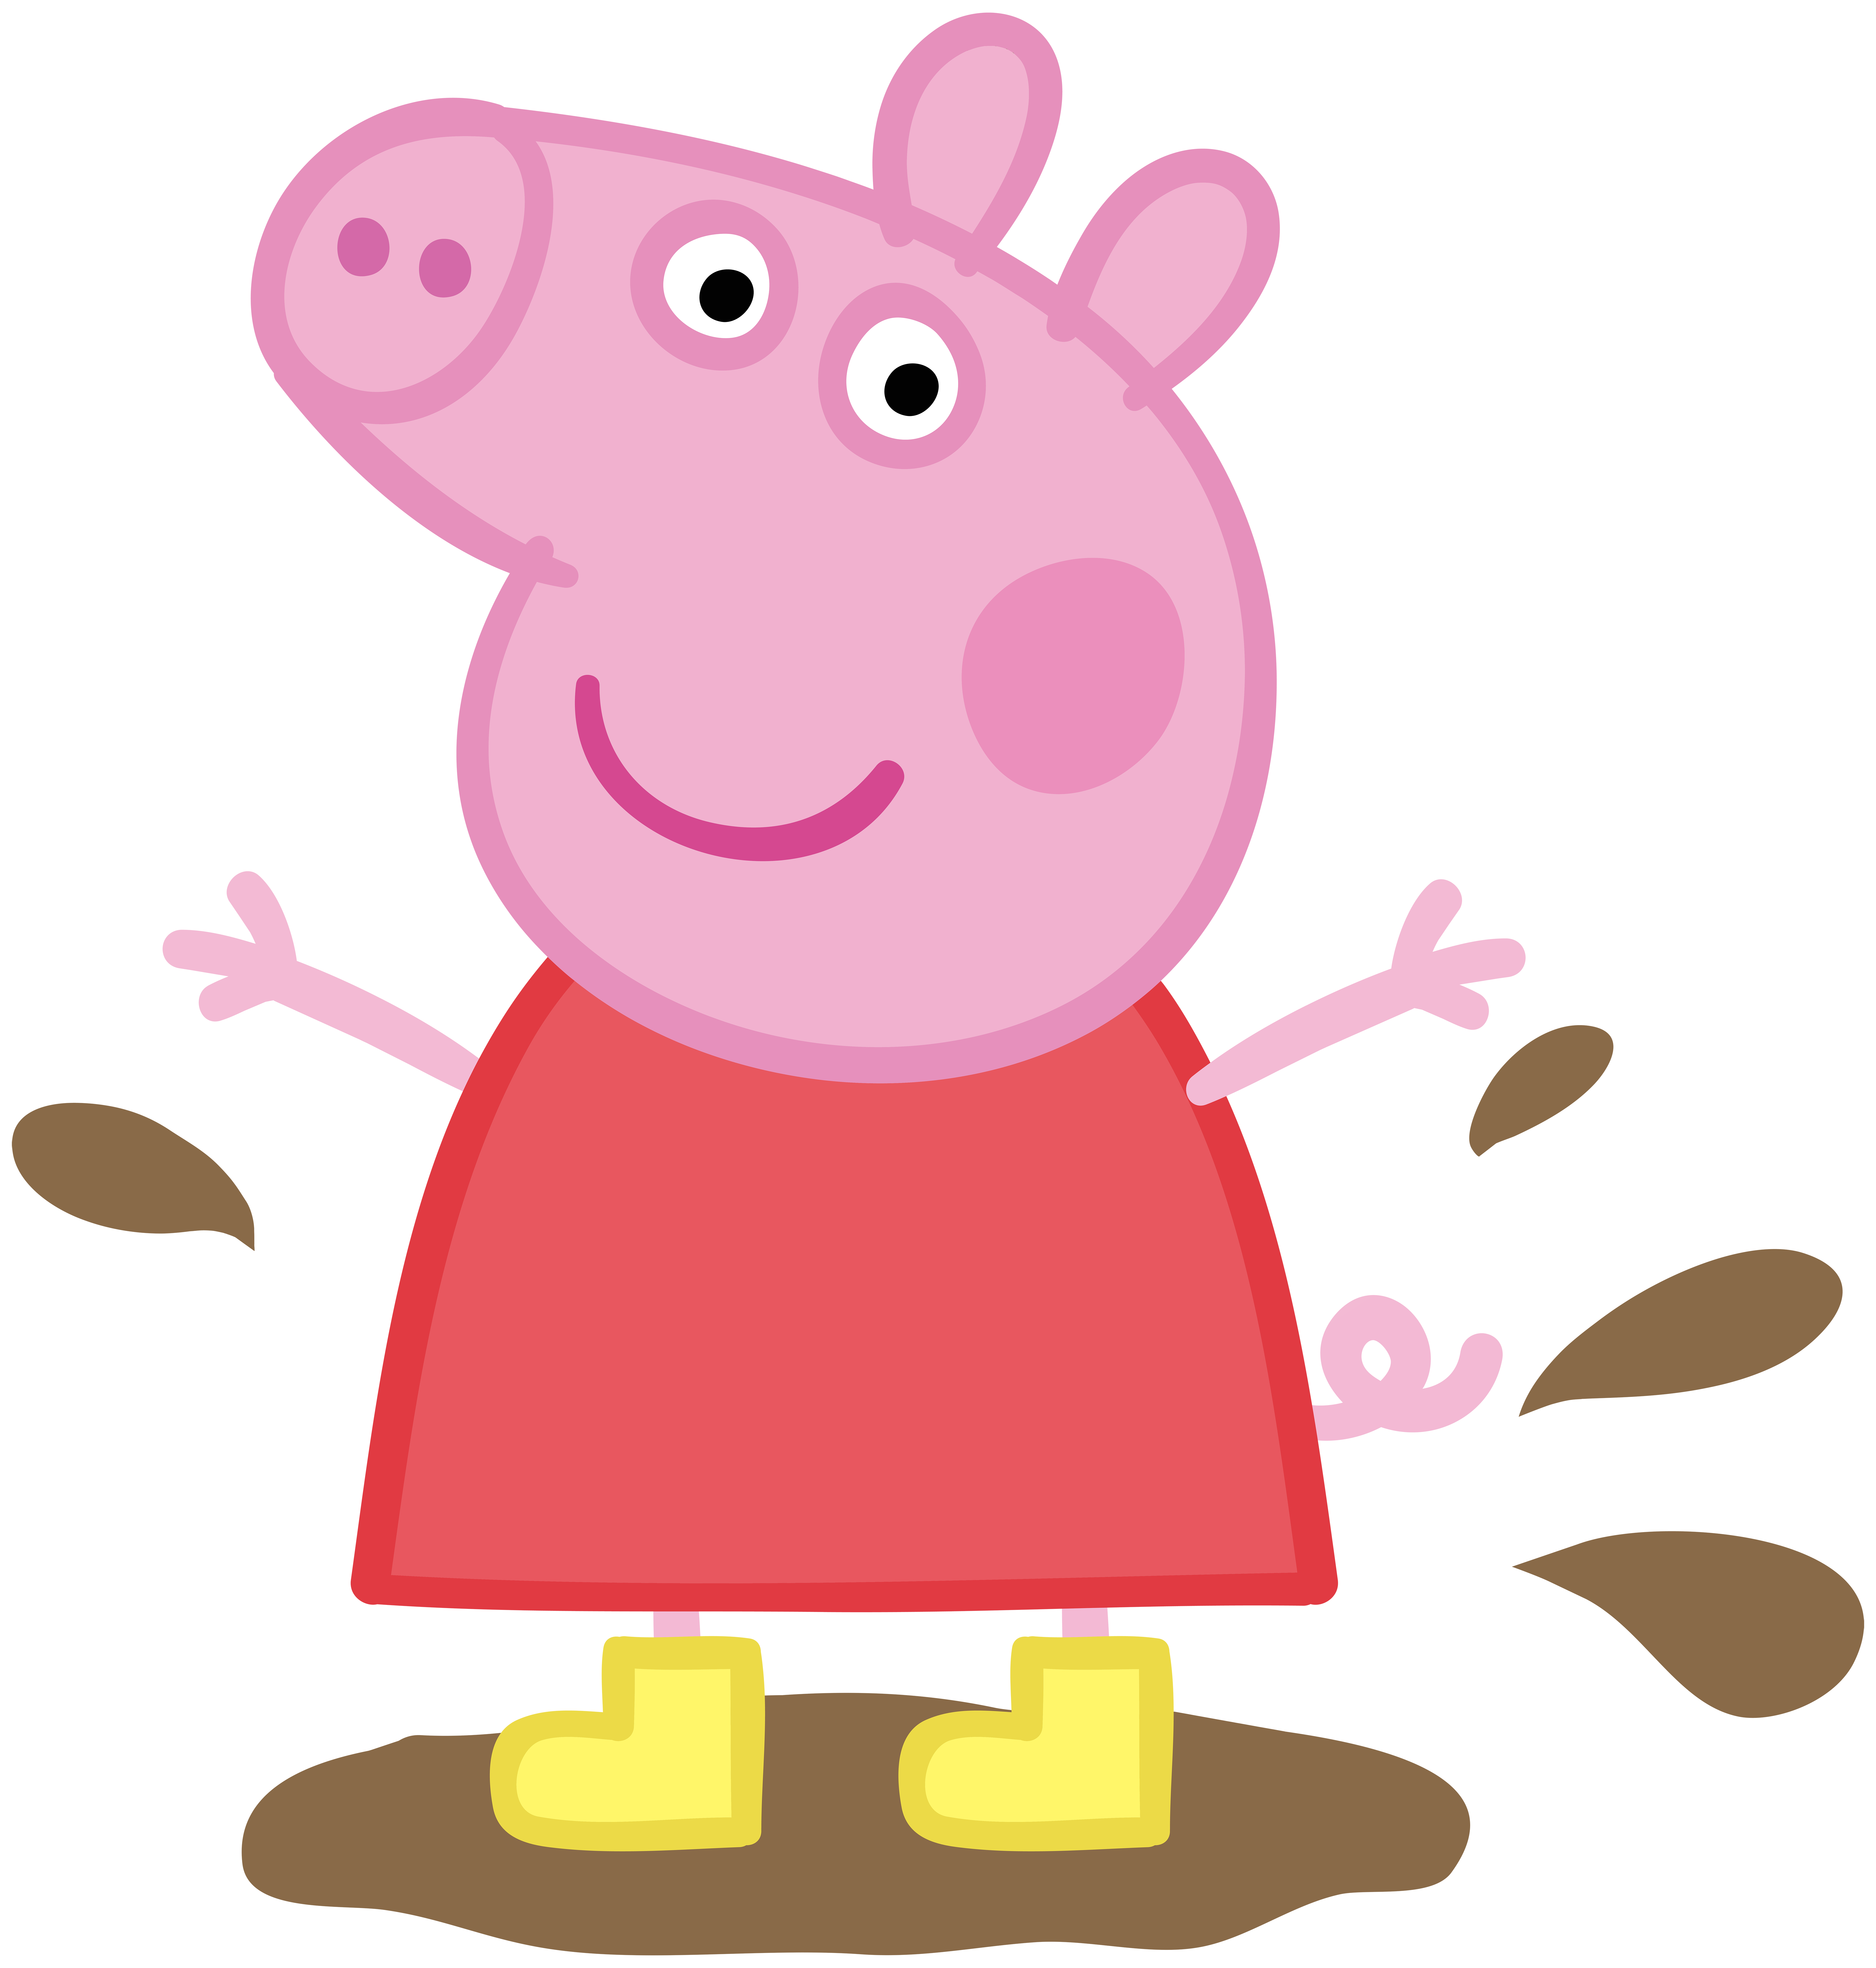 Pig halloween clipart picture transparent download Peppa Pig in Muddy Puddle Transparent PNG Image | Gallery ... picture transparent download